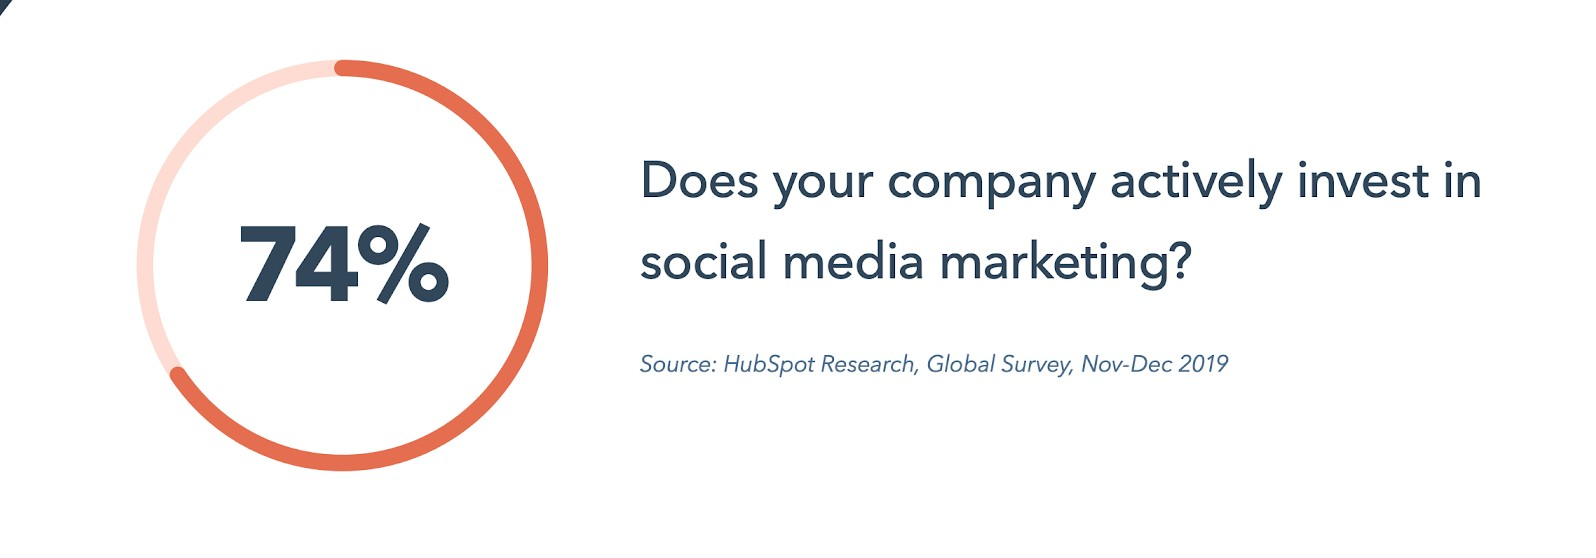 74 percent of companies actively invest in social media marketing